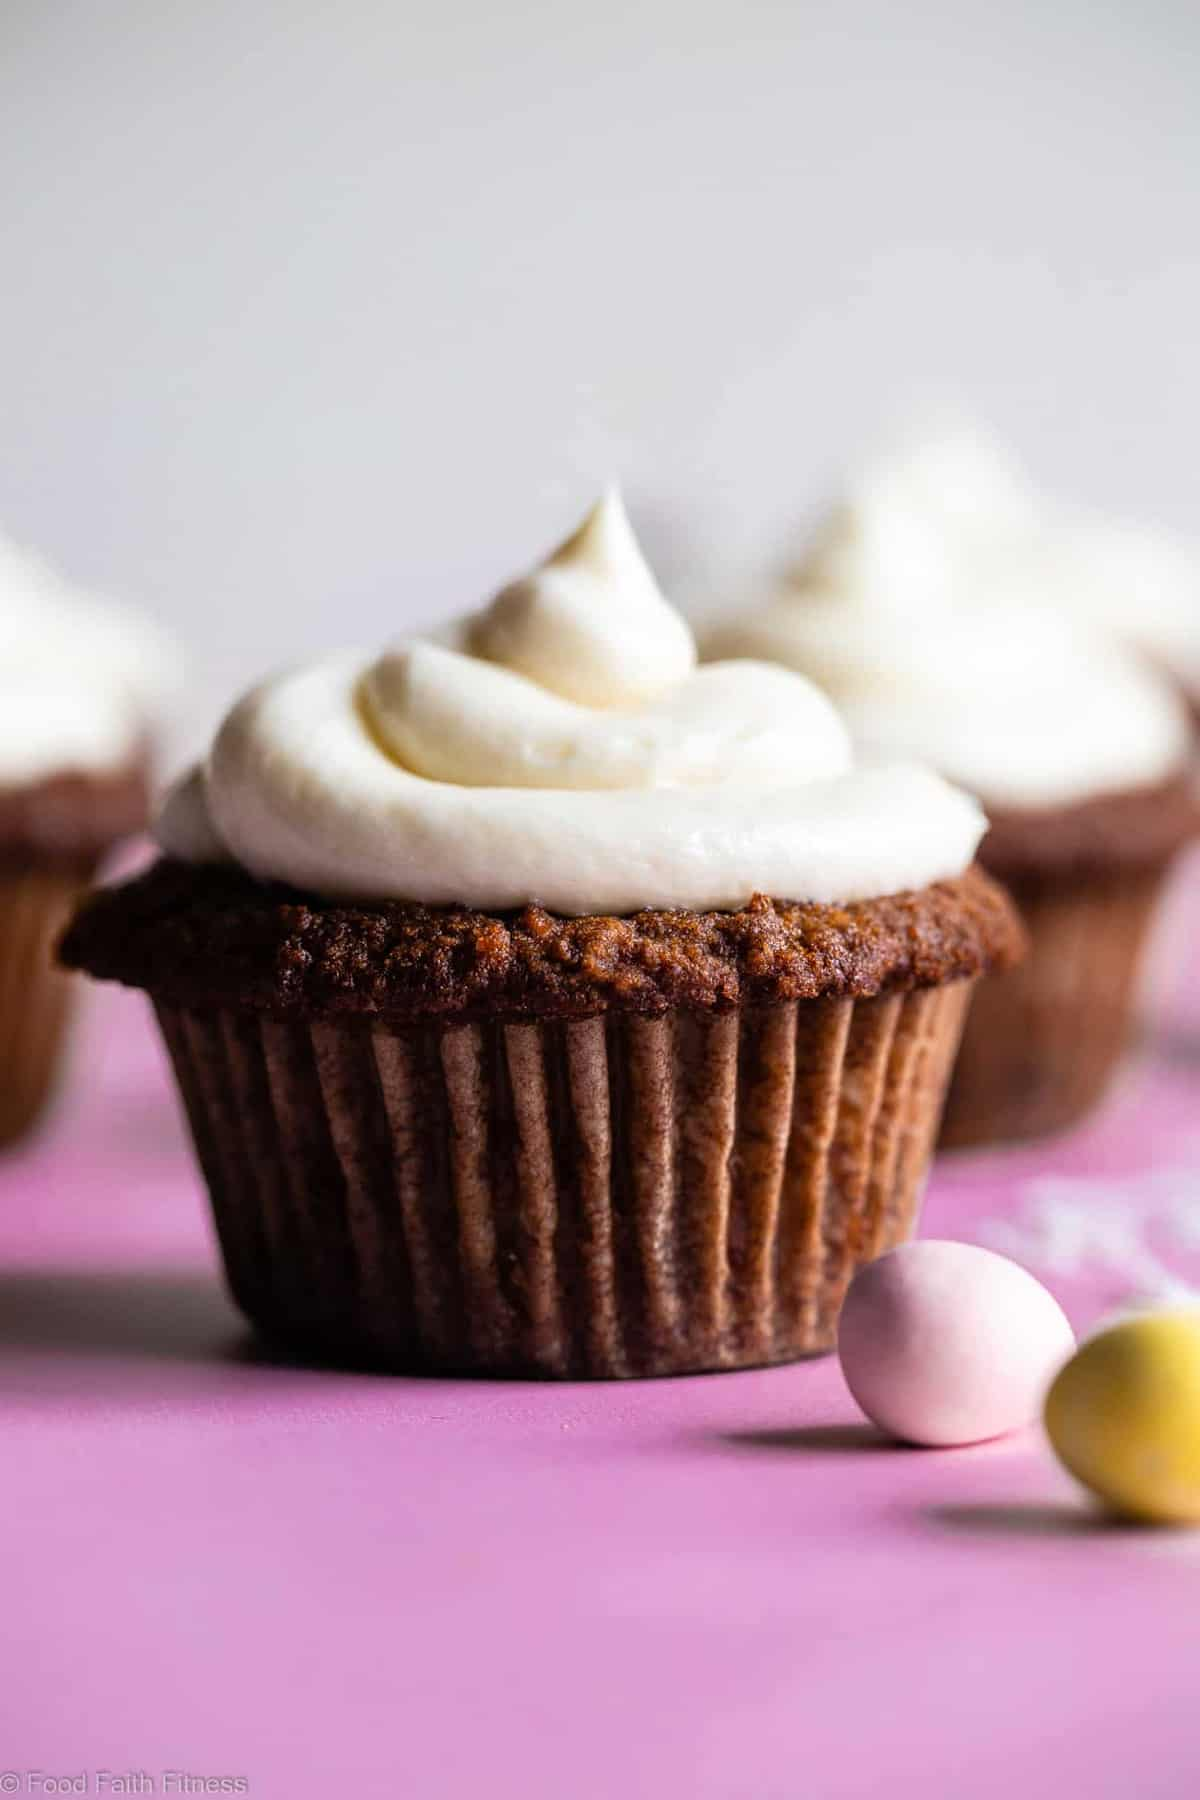 Gluten Free Carrot Cake Cupcakes -These Gluten Free Carrot Cake Cupcakes are tender, light, moist and perfectly spicy-sweet! No one will believe they are gluten free! Dairy free option included! | #Foodfaithfitness |